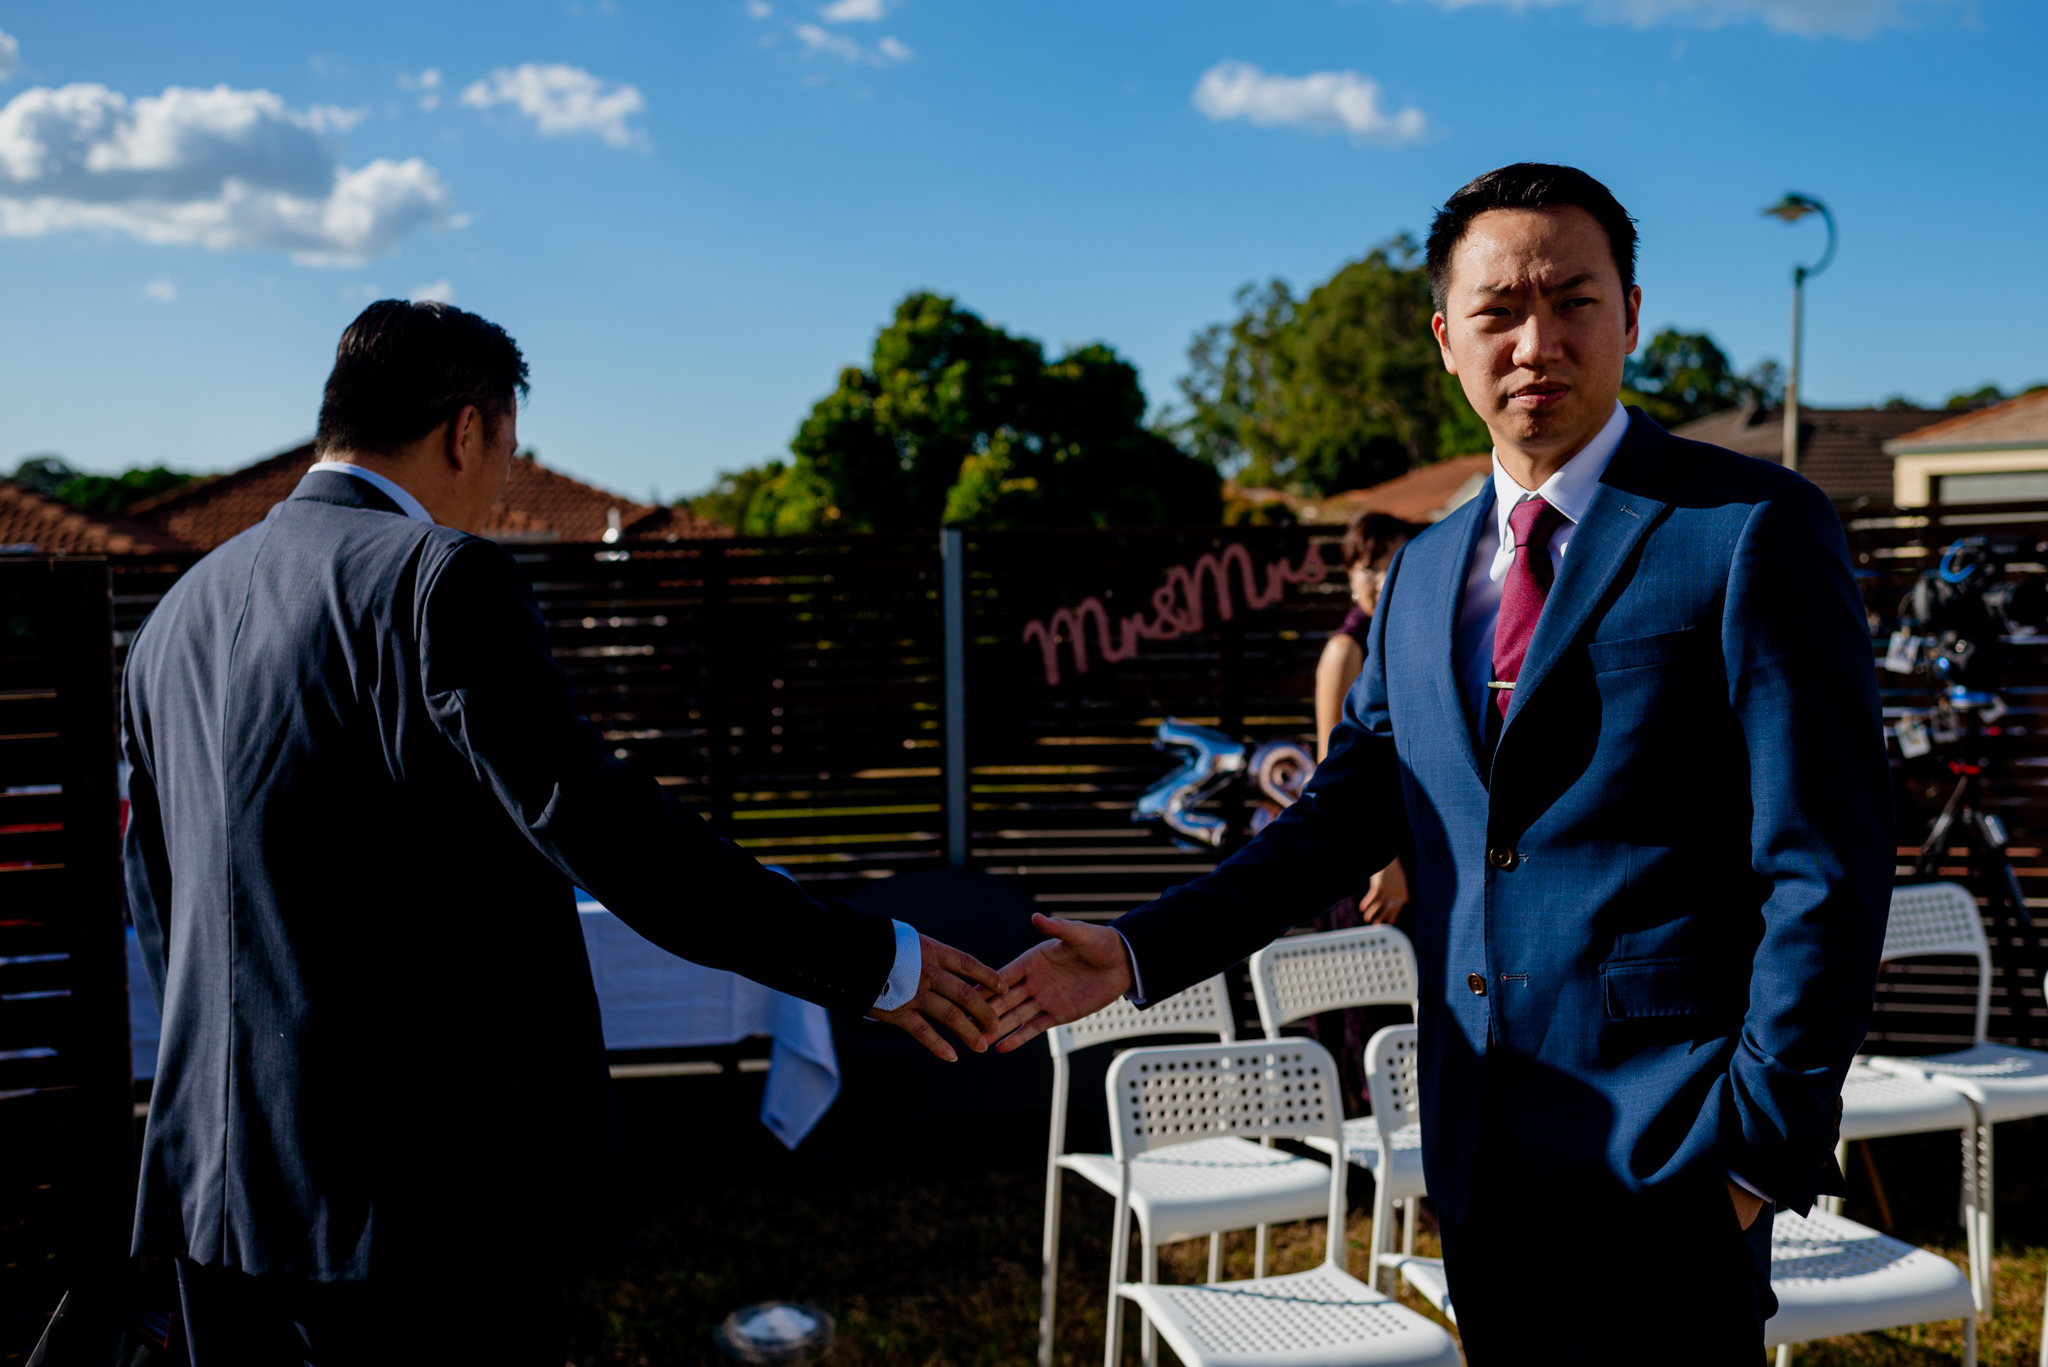 Two asian men in suits look serious and pass by each other and shake hands